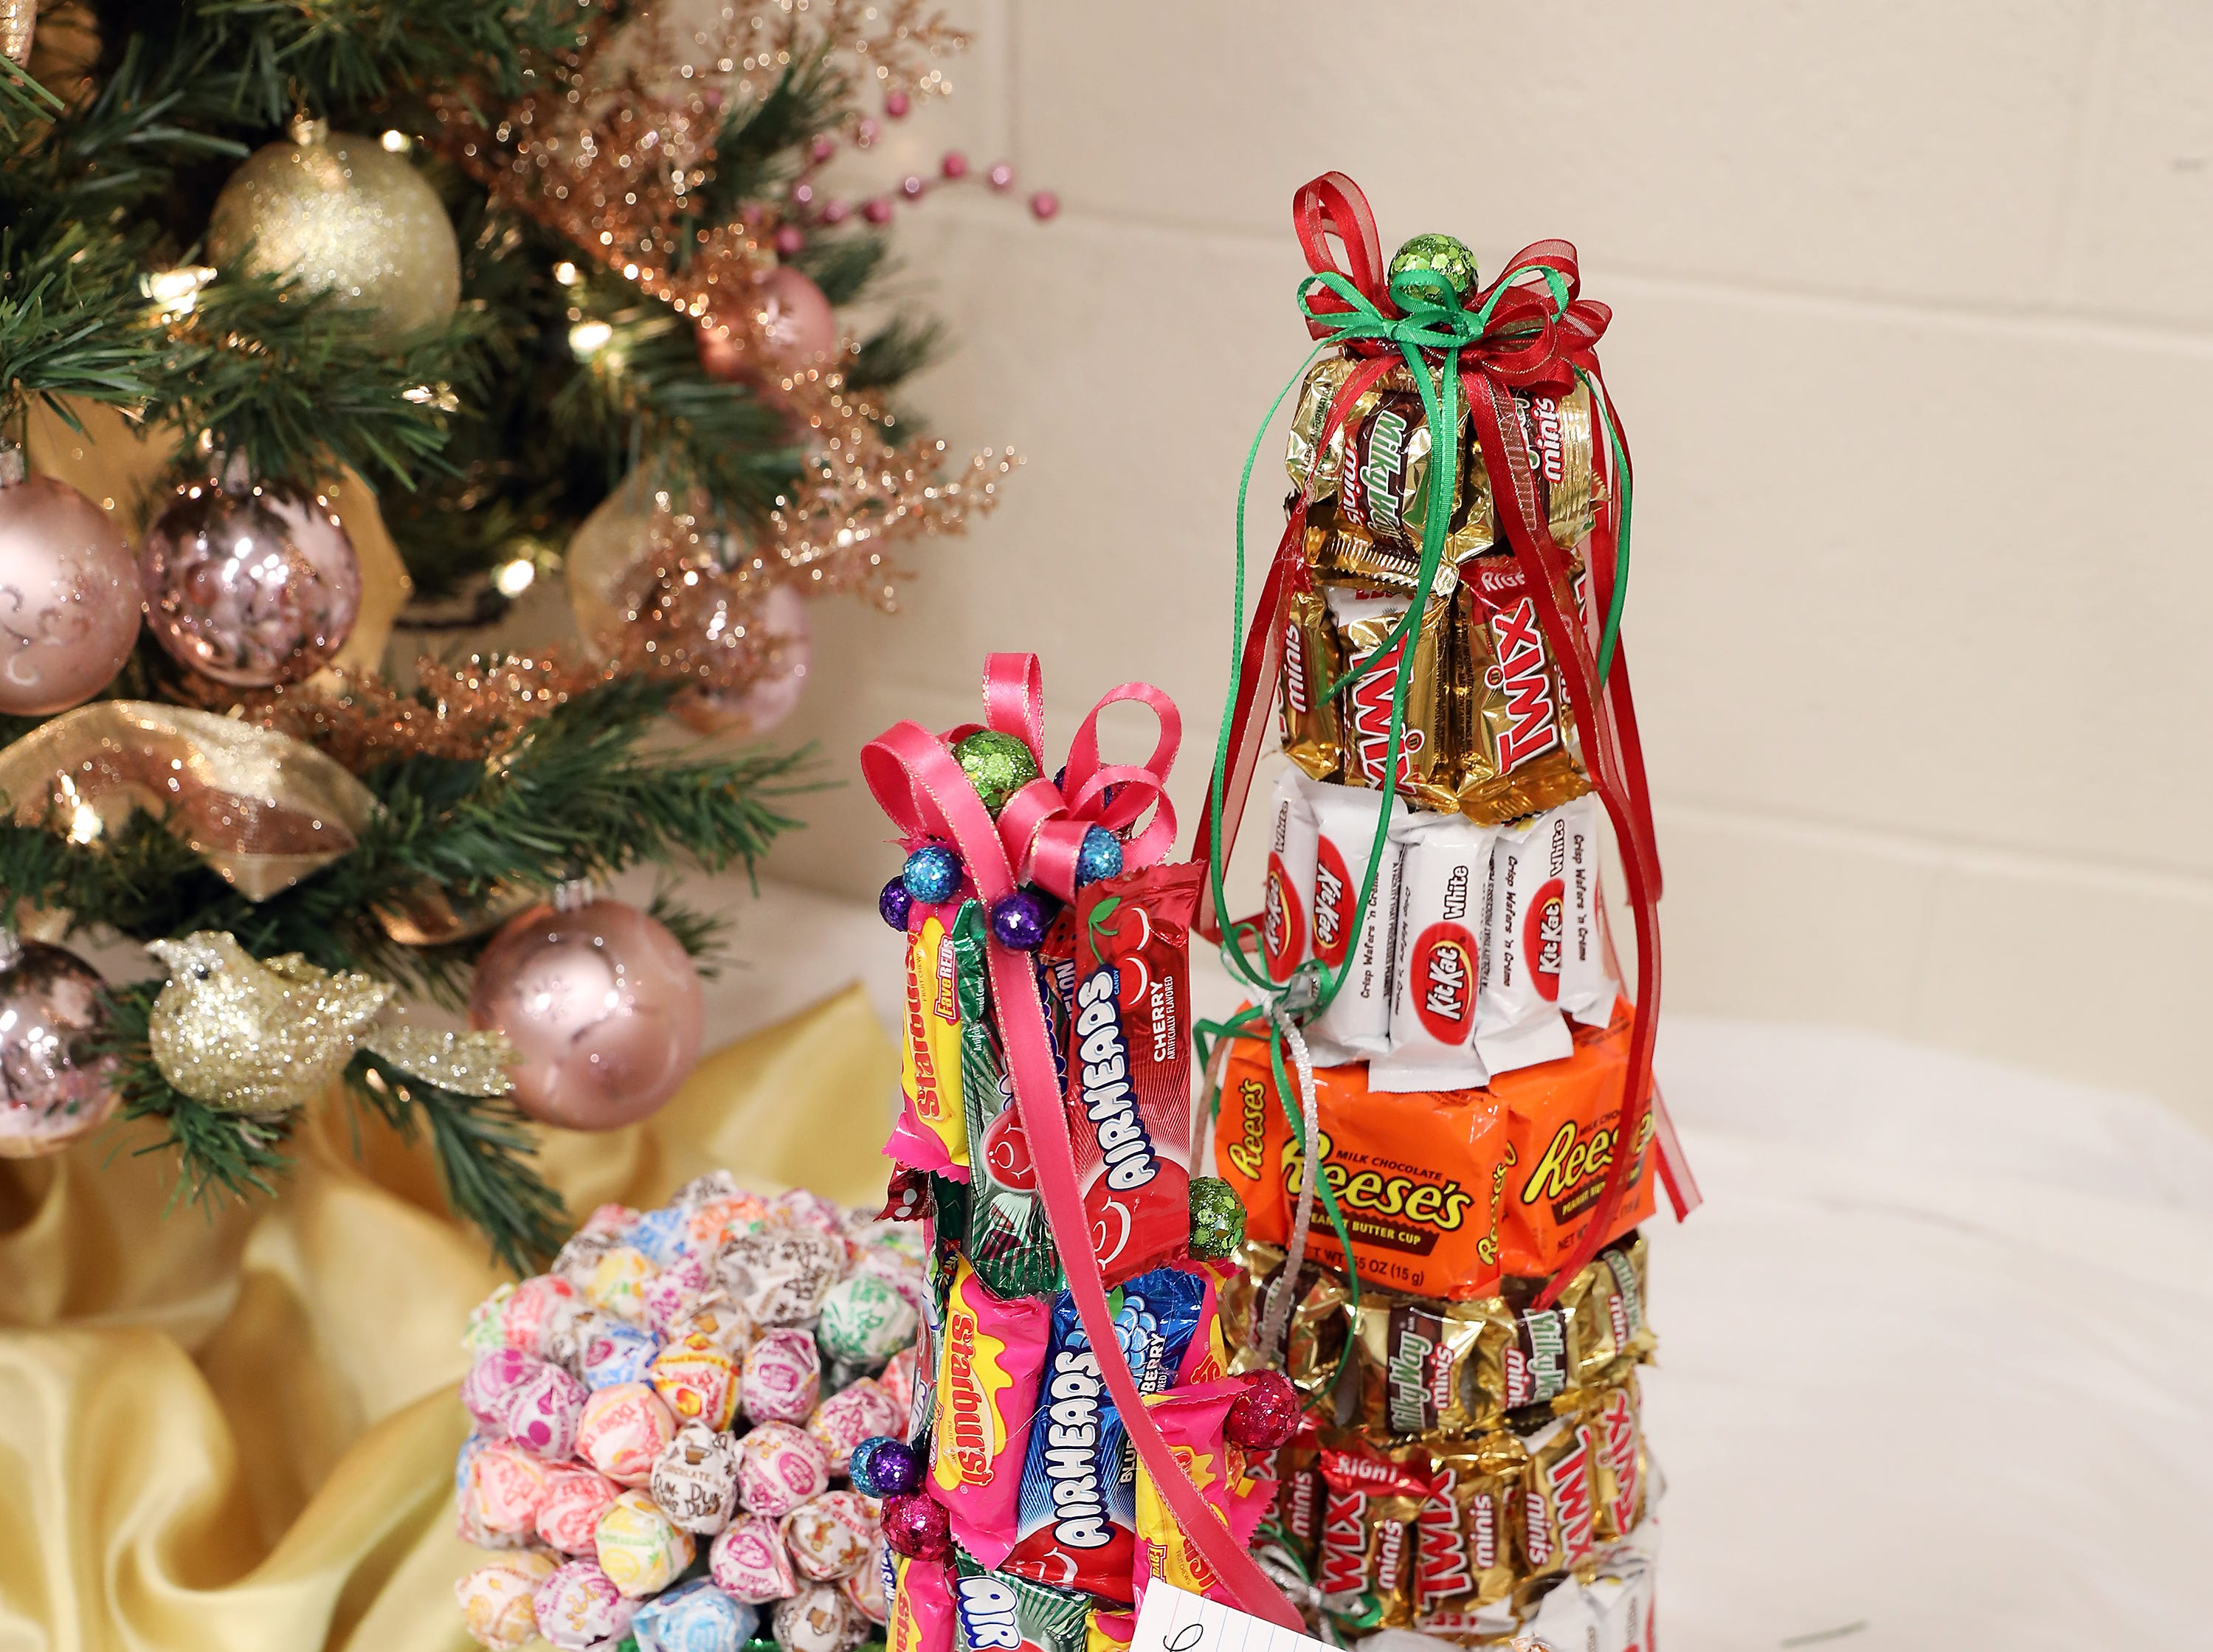 1753:45 PMLeianne Barnes - McCollister and Assoc. RealtorMini TreeCandy LandA set of 3 mini trees made out of your favorite candy!1 free home warranty with a purchase of home through Leianne Barnes, McCollister and Assoc Realtor. $50 gift card to Adornetto's, Giacomo's, Old Market House Inn and $50 Lowes gift card.